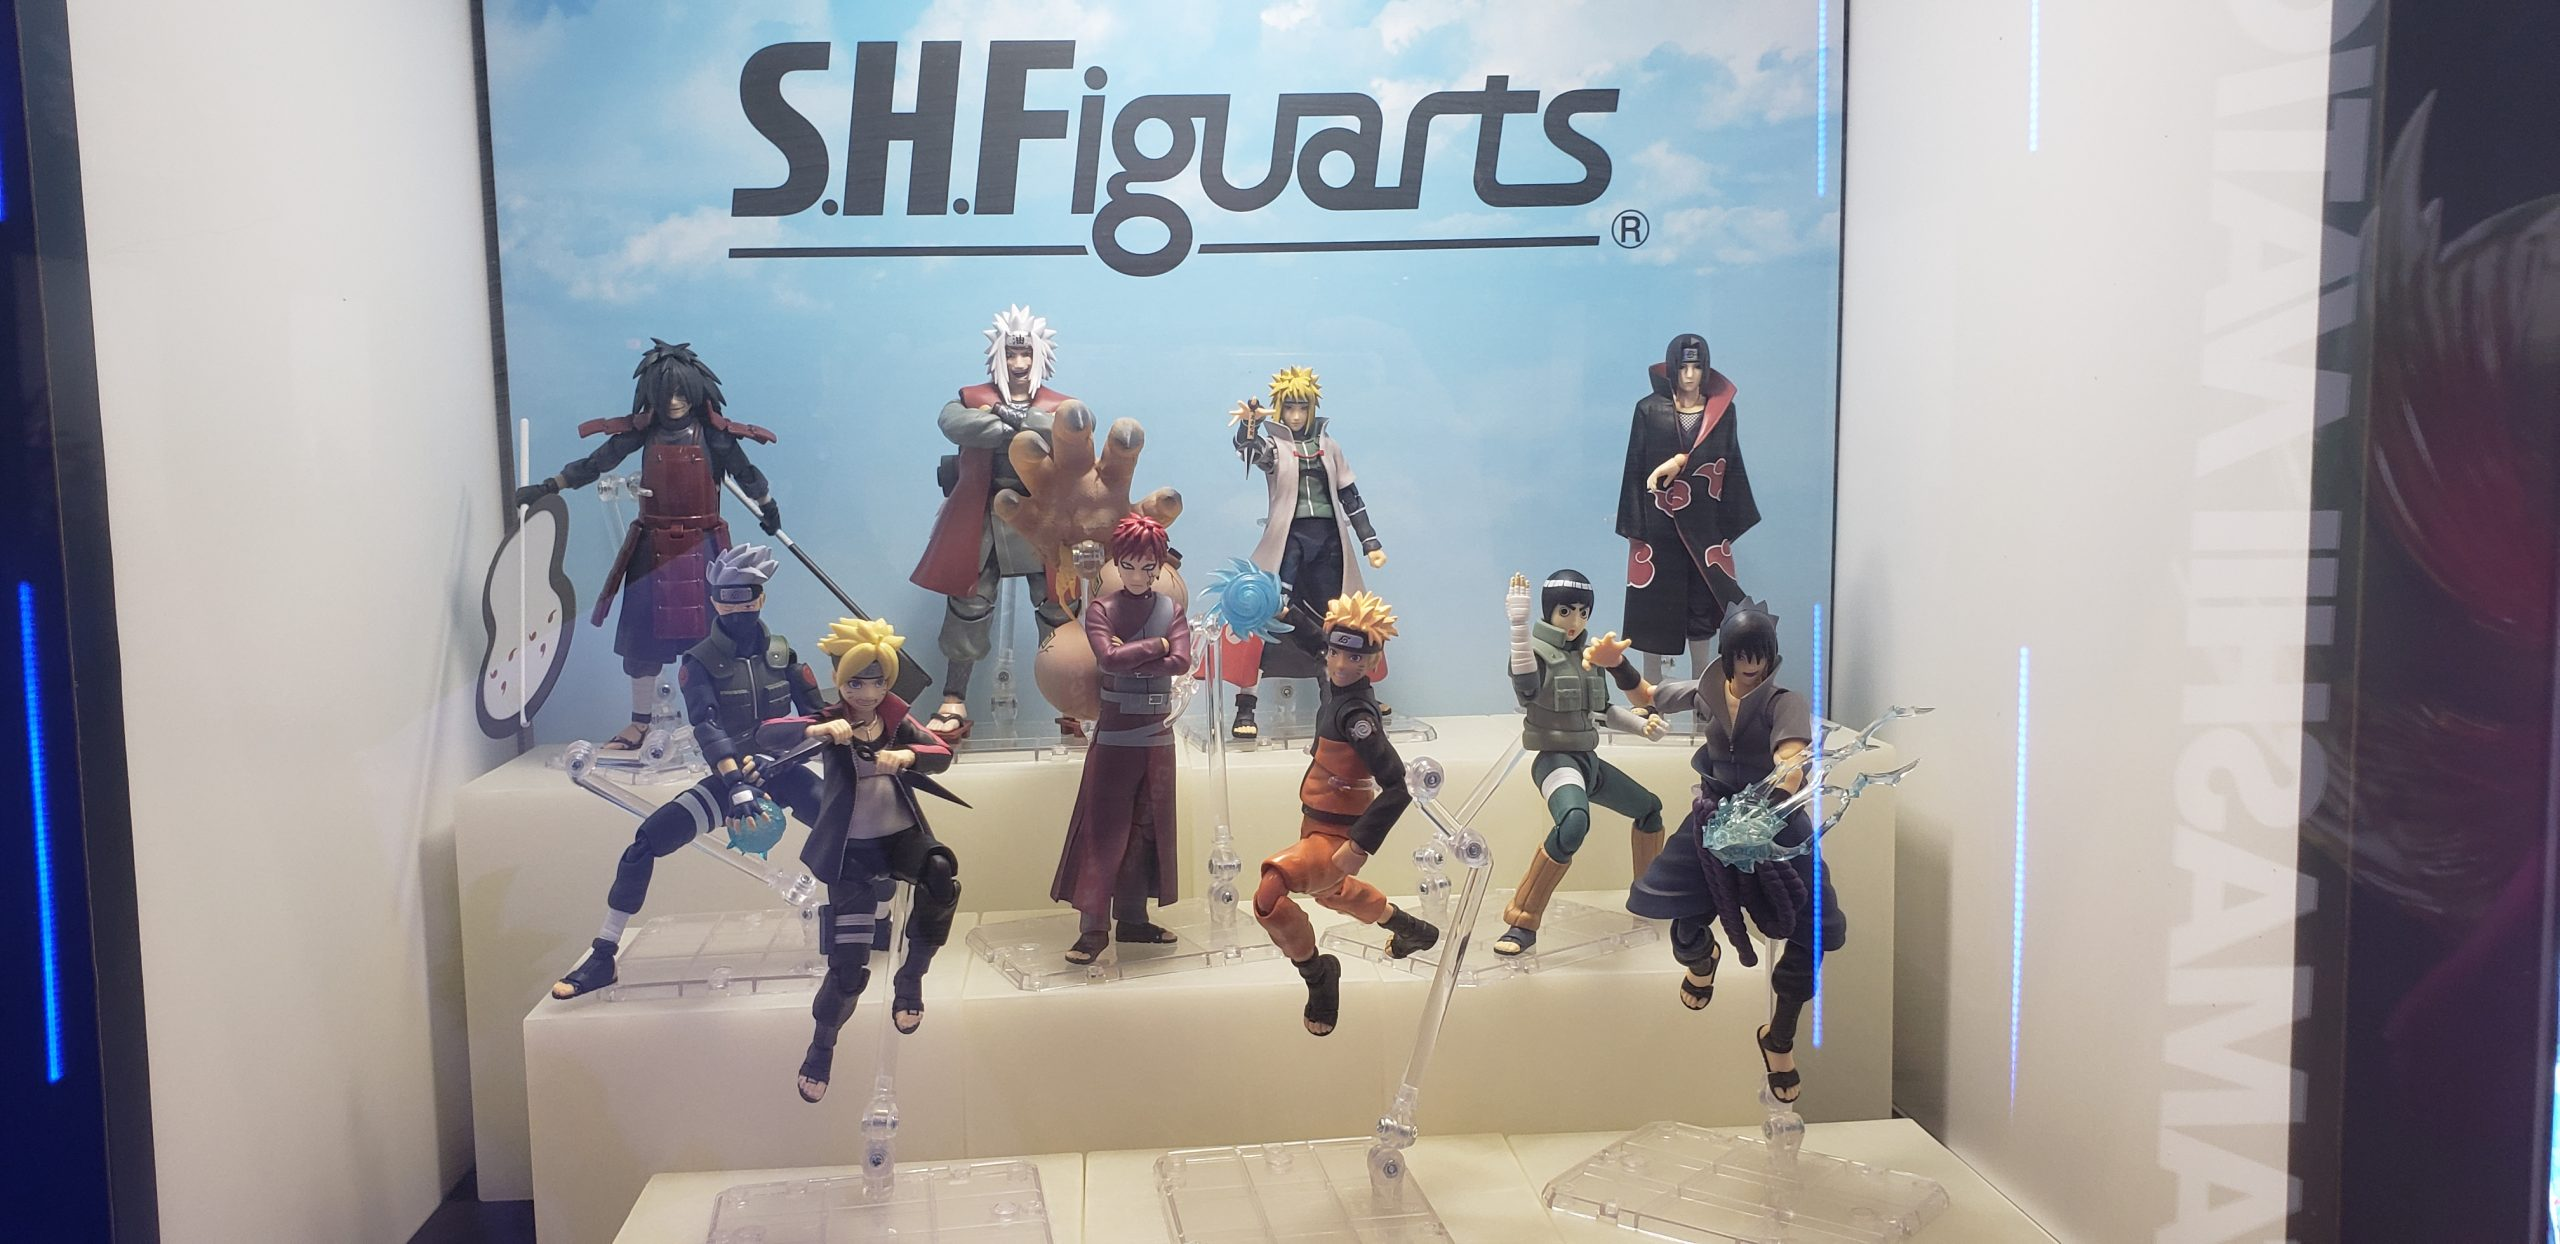 NYCC '21: All of Tamashii Nation's Toys and Statues